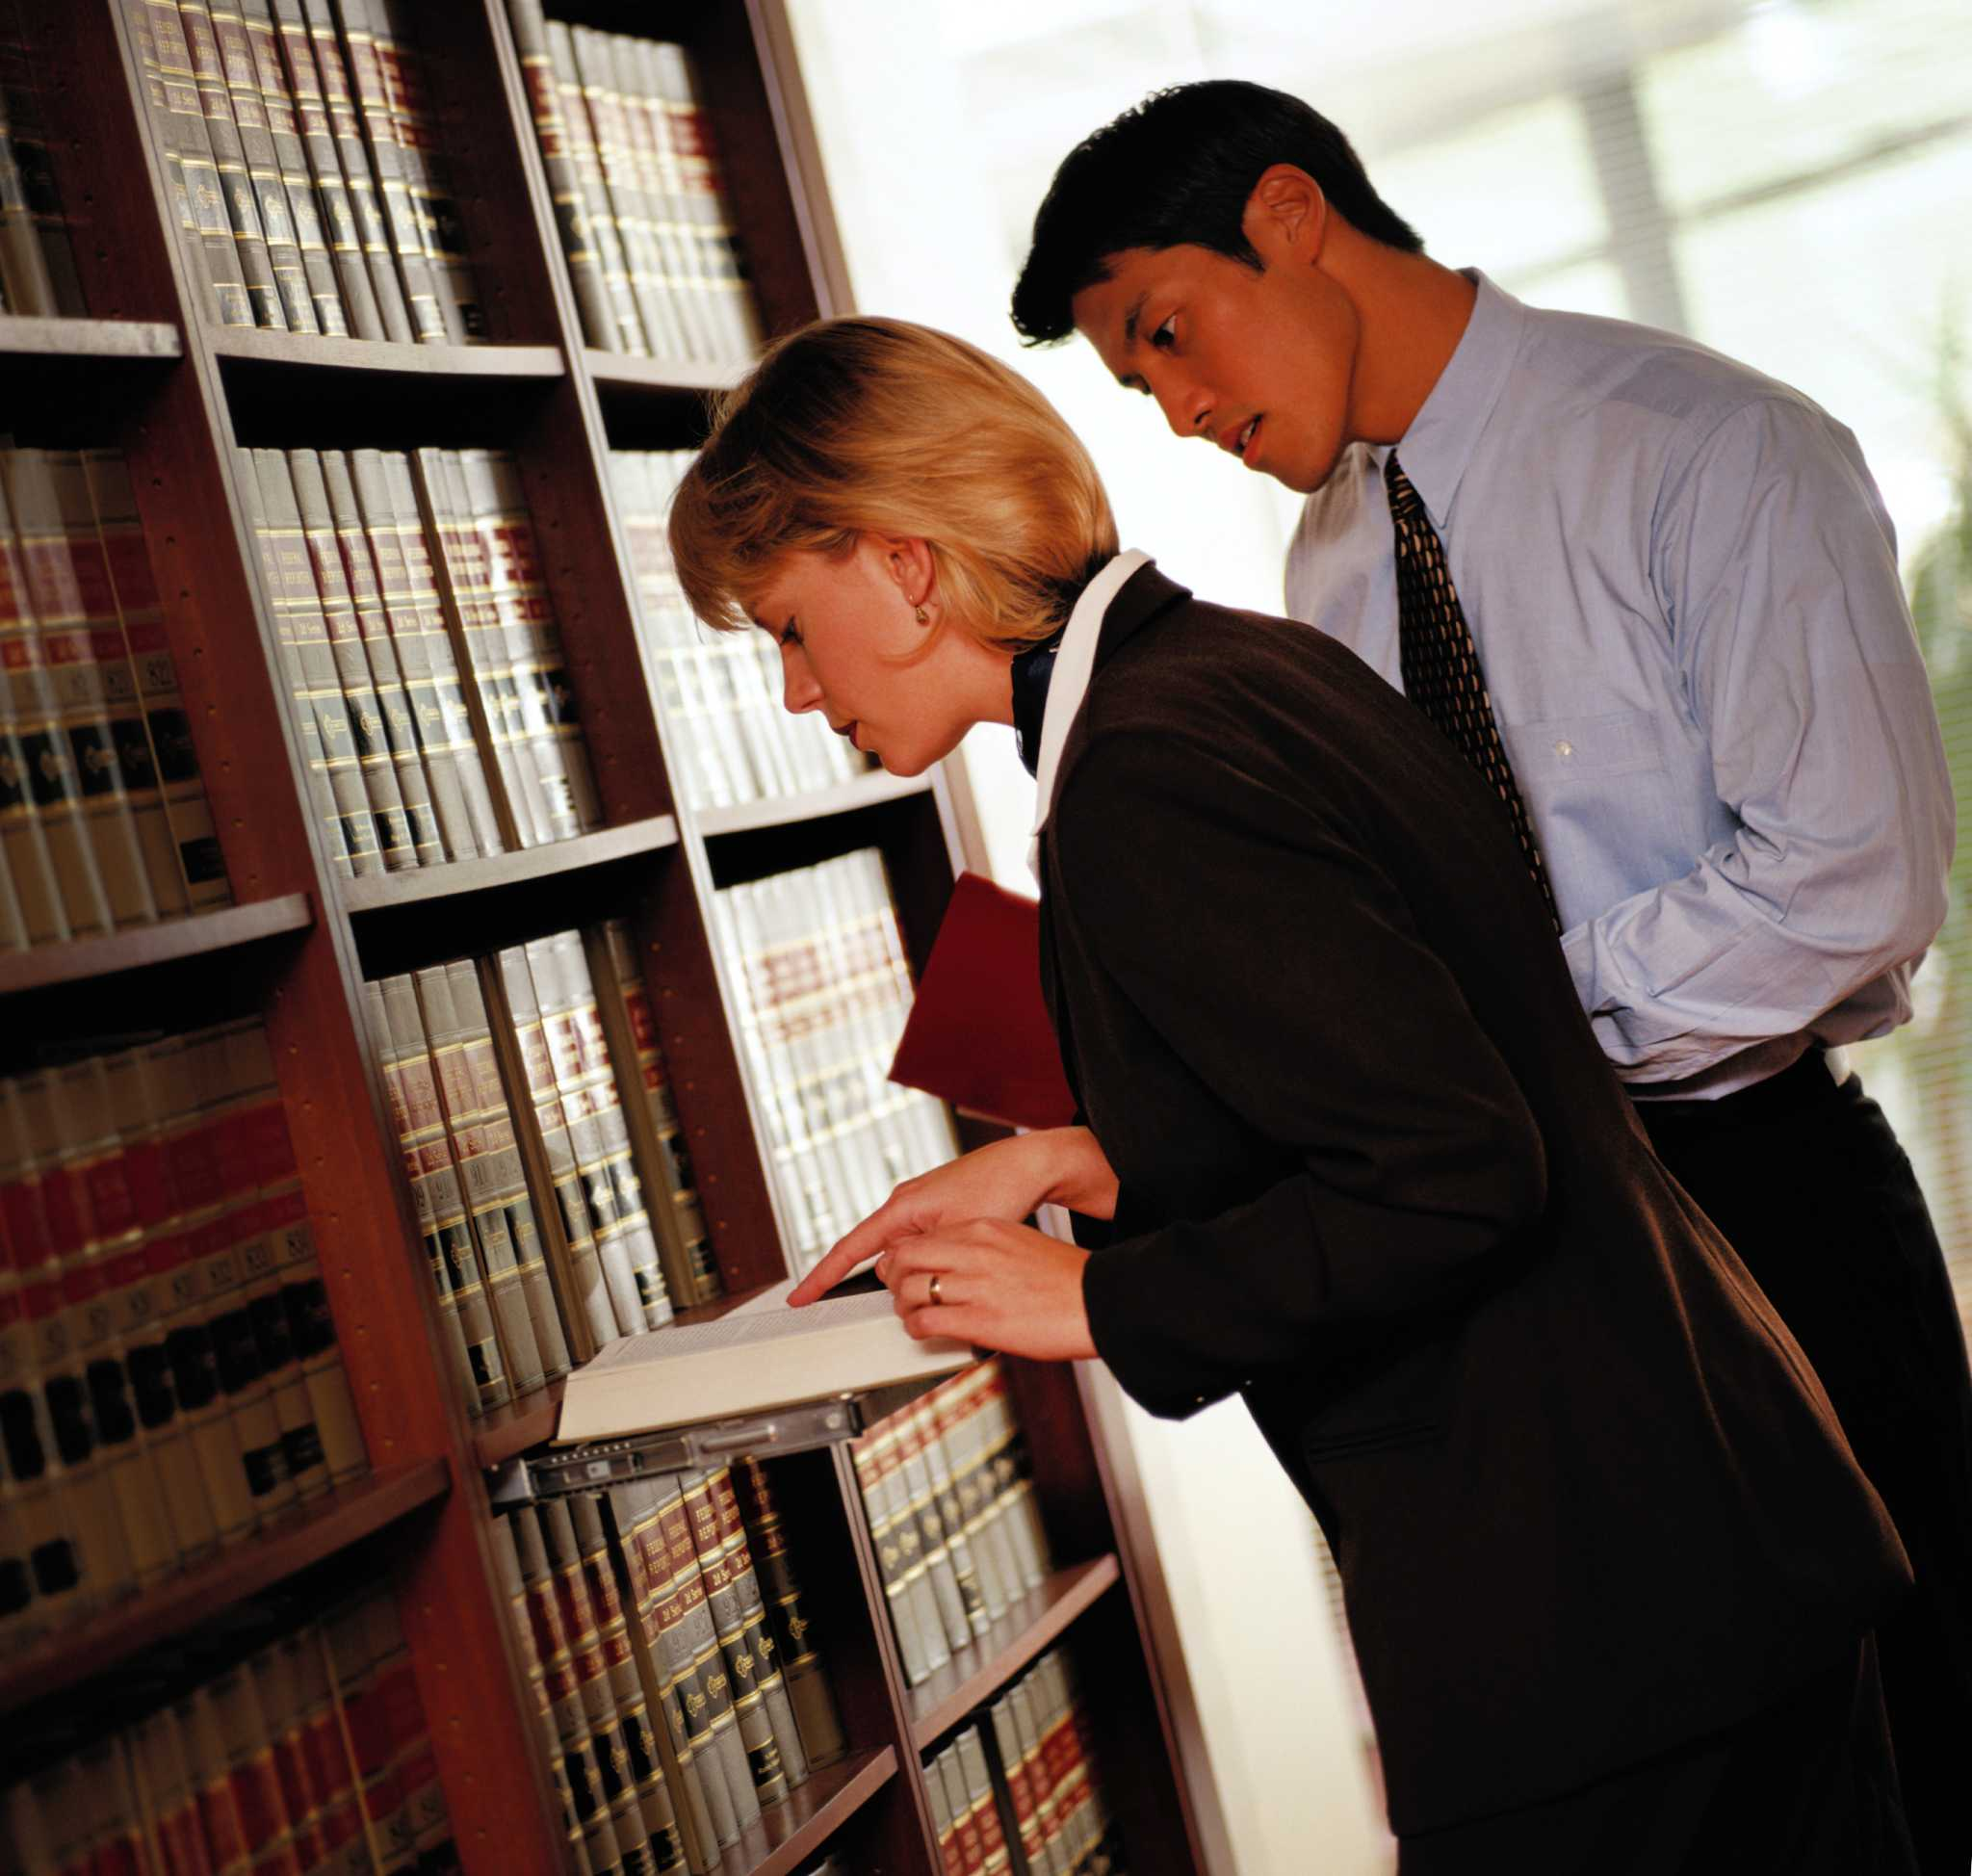 paralegals role in the legal system Let's face it – television shows that focus on legal matters are interesting and they can be fun to watch  paralegals and their role in the legal system.